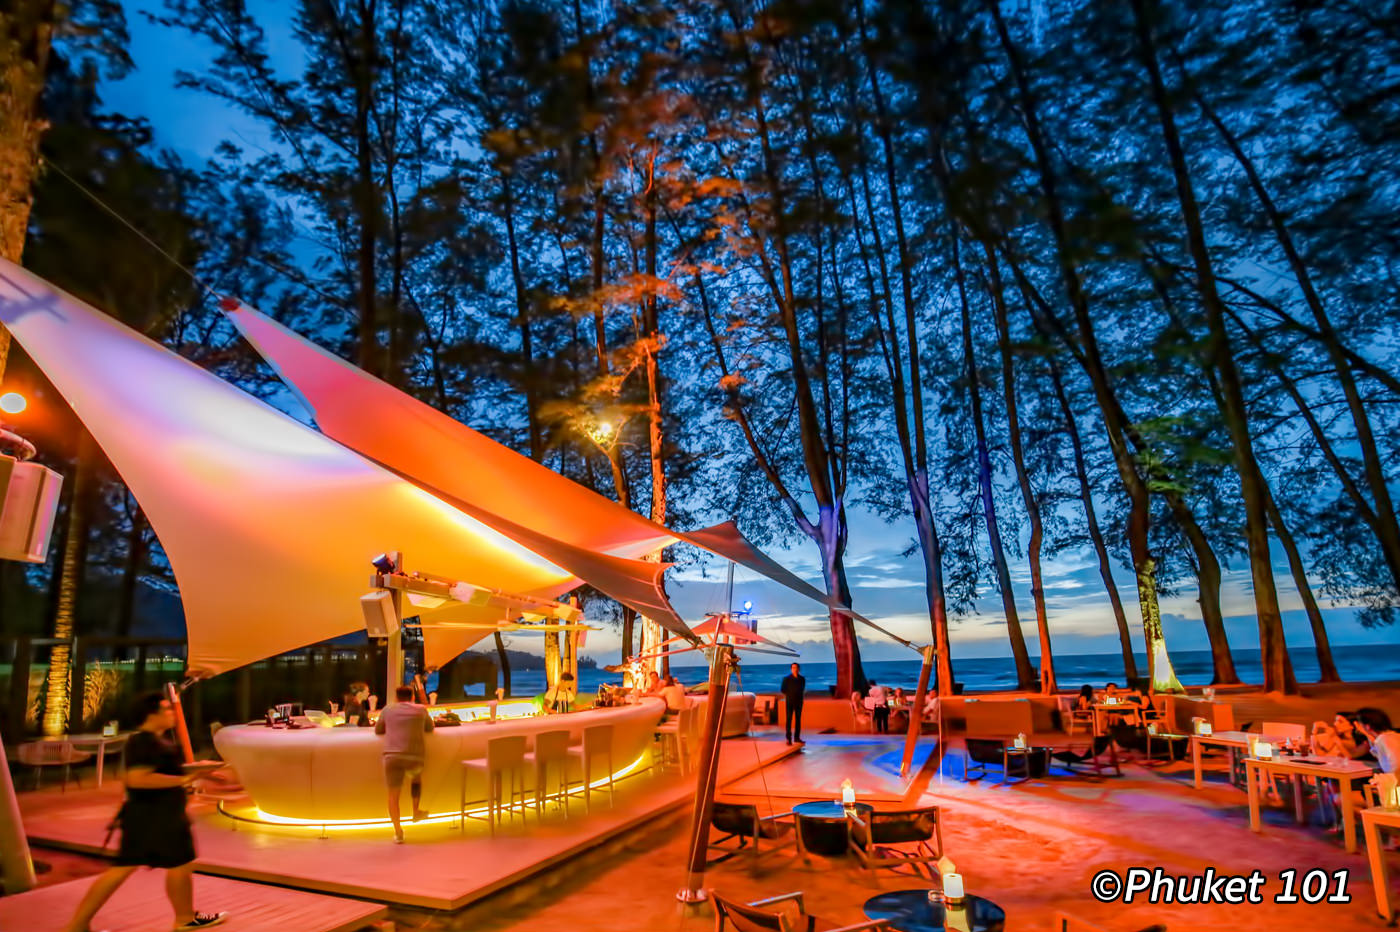 HQ Beach Club on Kamala Beach in Phuket